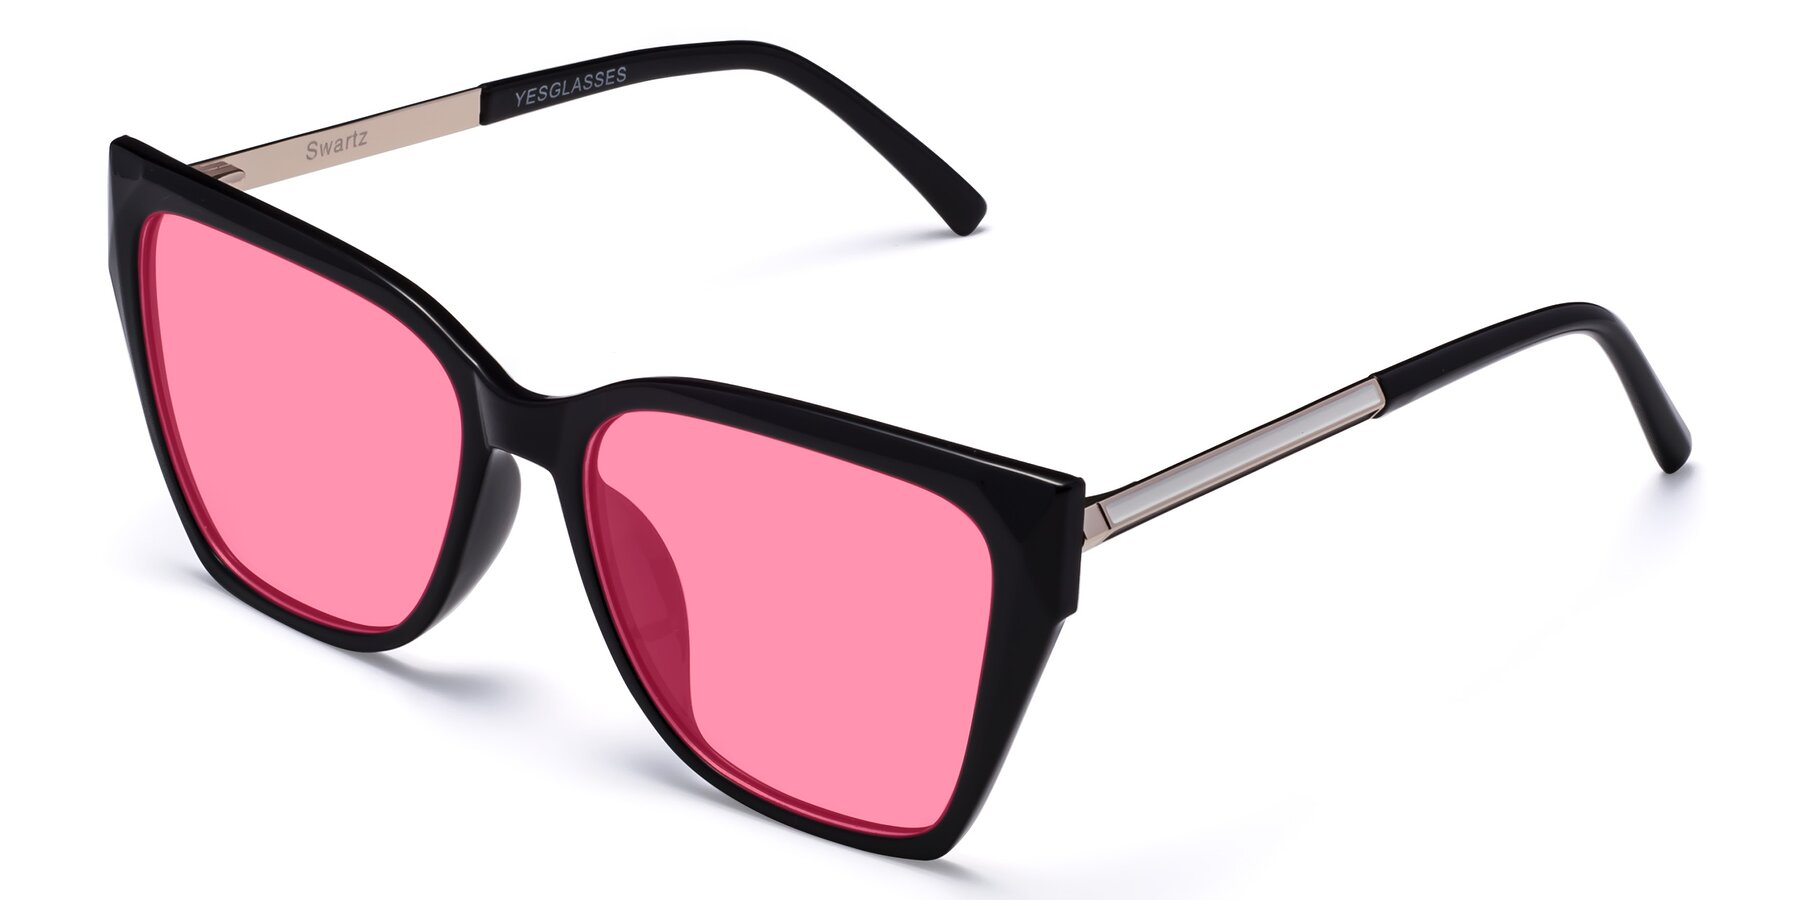 Angle of Swartz in Black with Pink Tinted Lenses